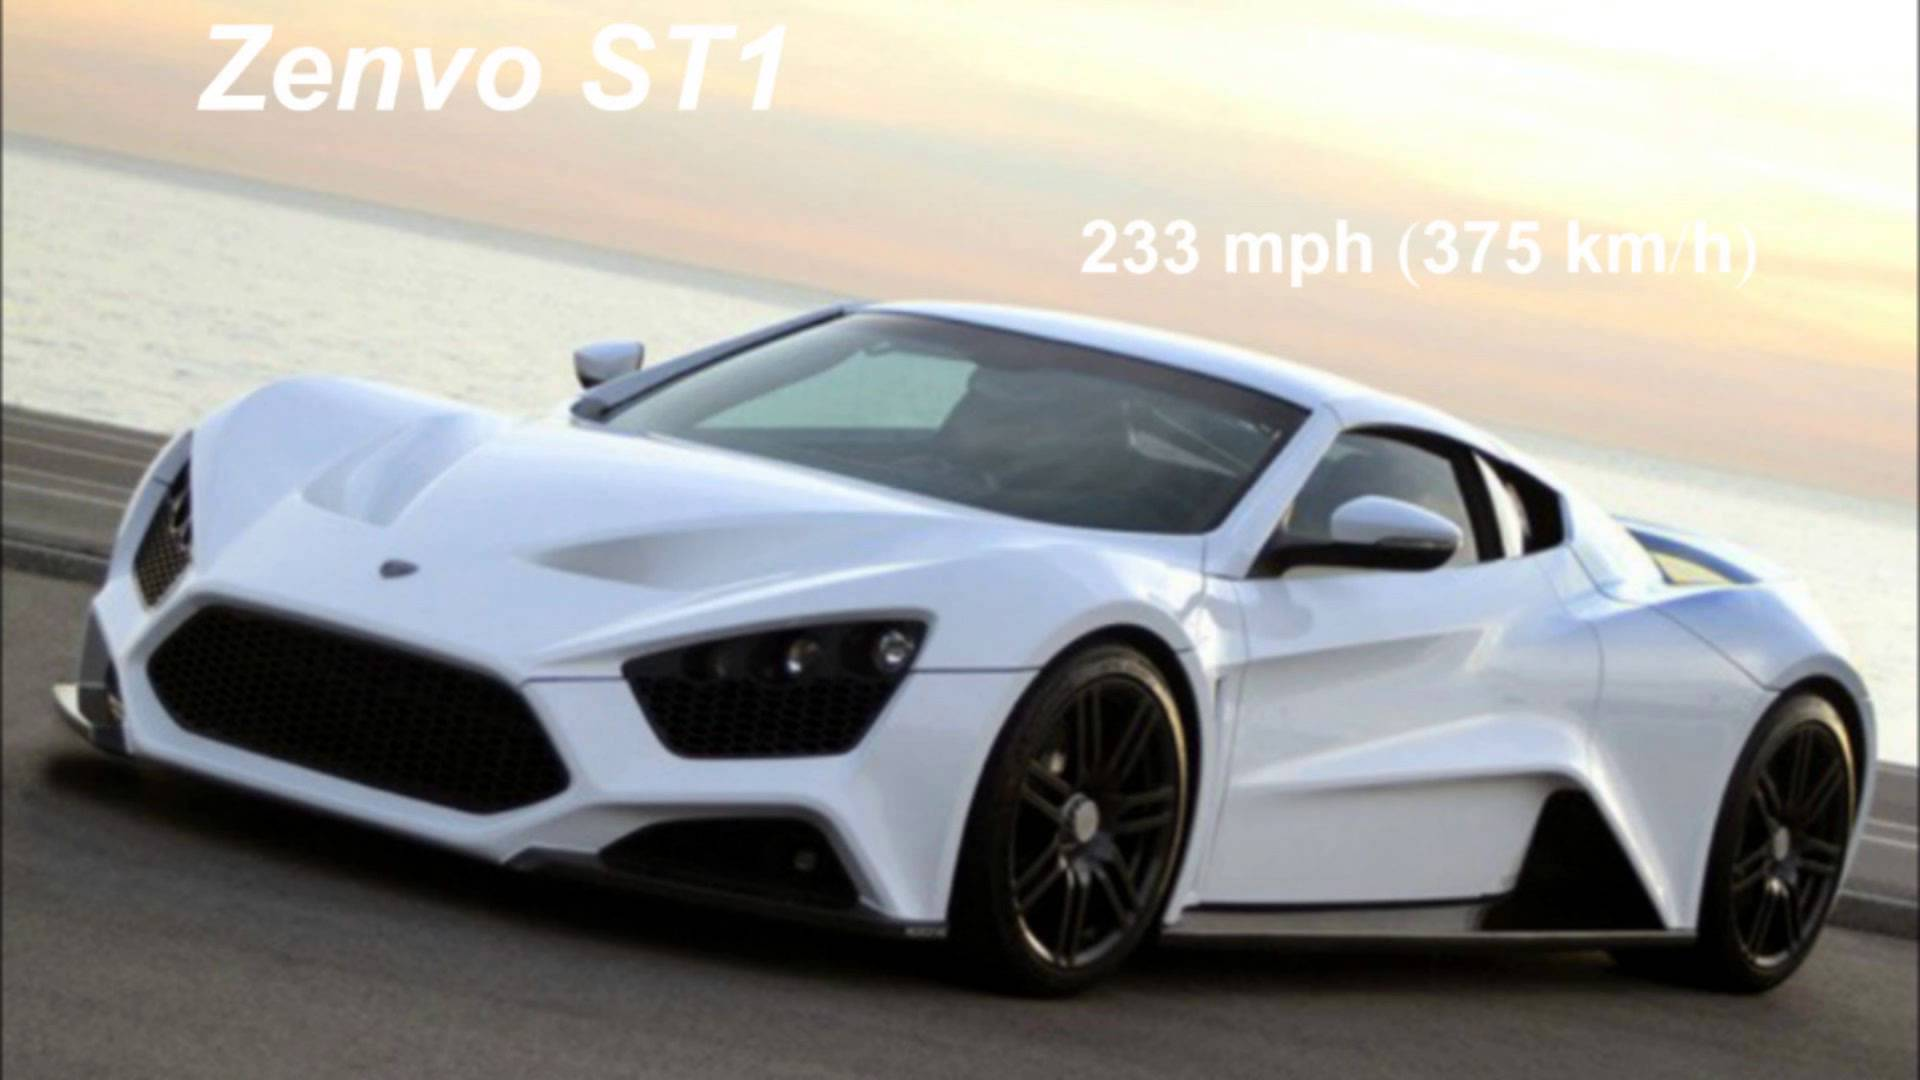 The 10 fastest cars in the world 20152016 1920x1080